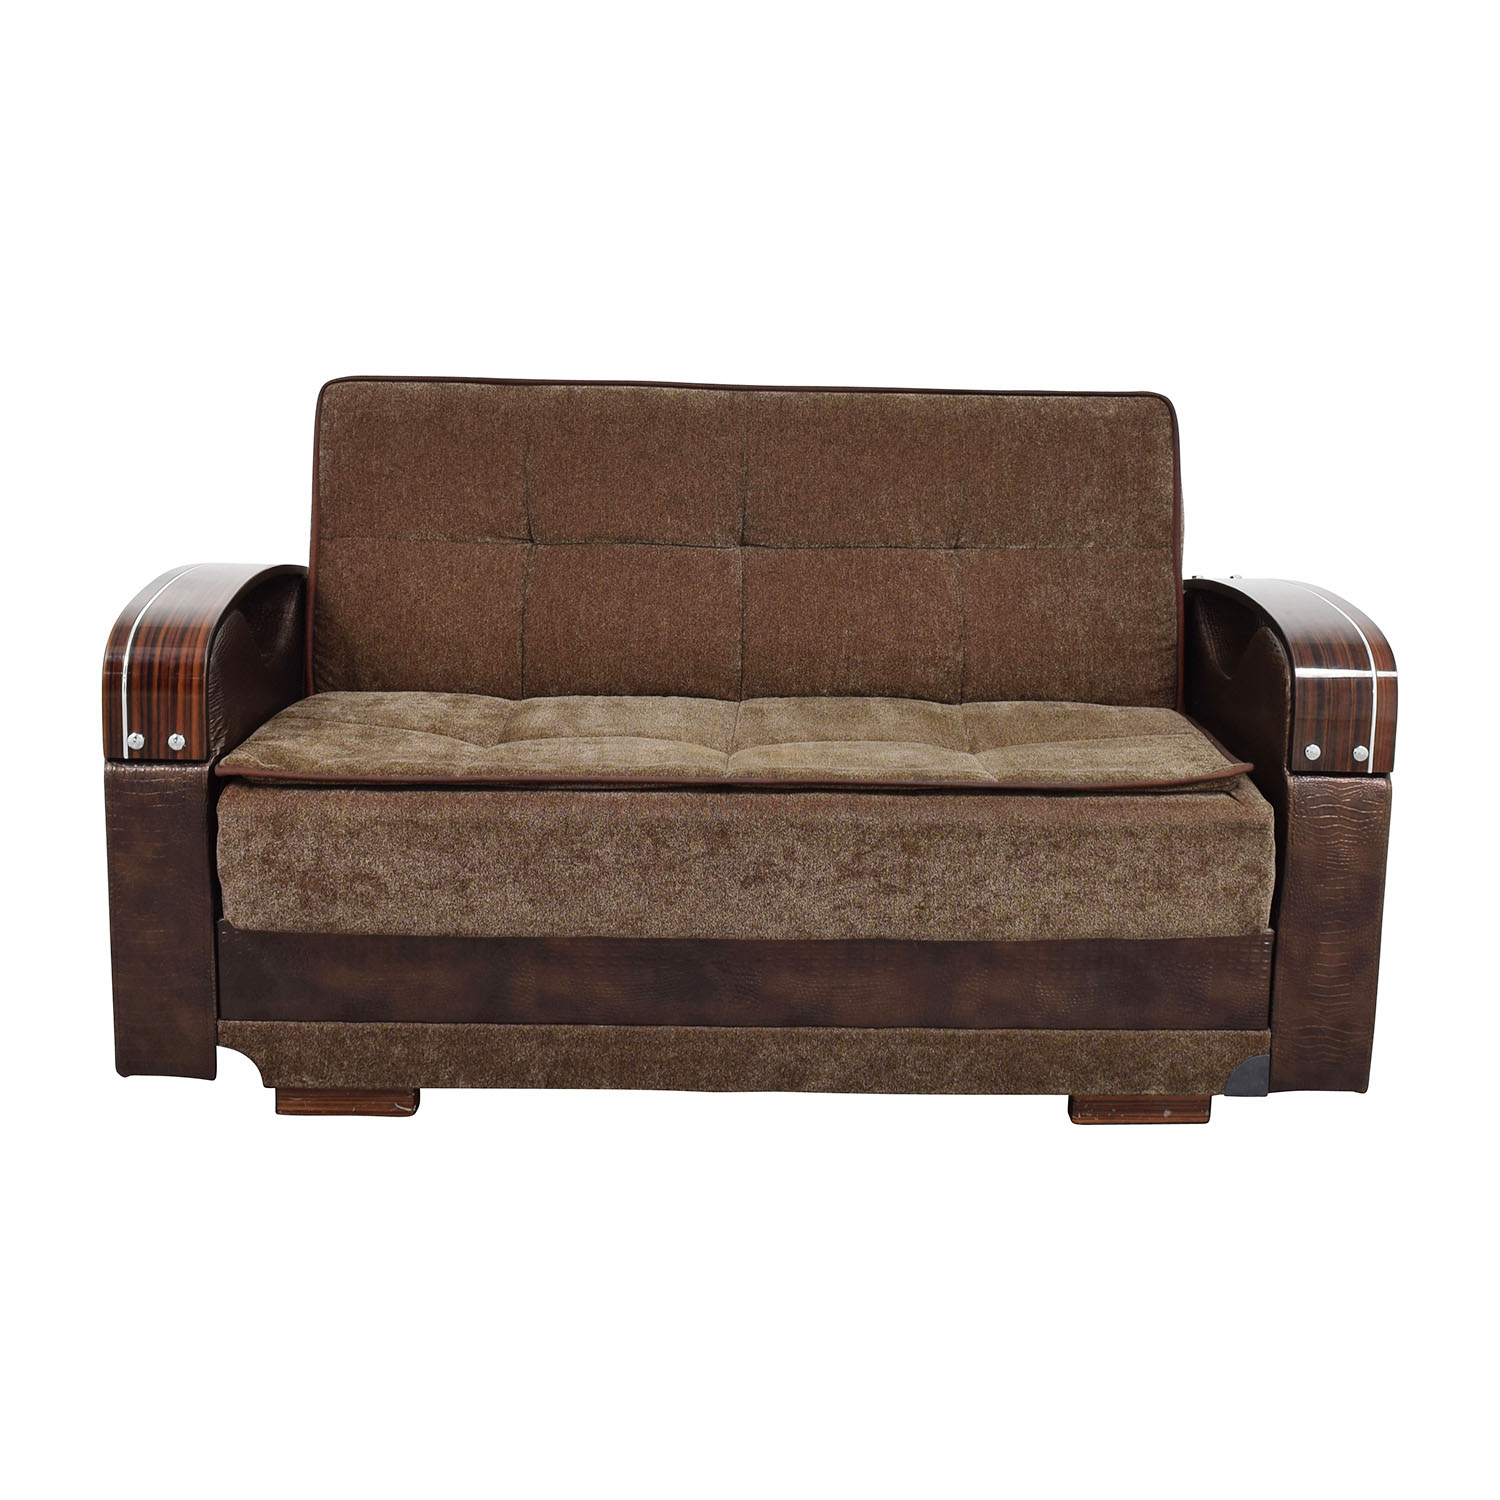 buy Na Brown Futon Love Seat with Wooden Armrest online